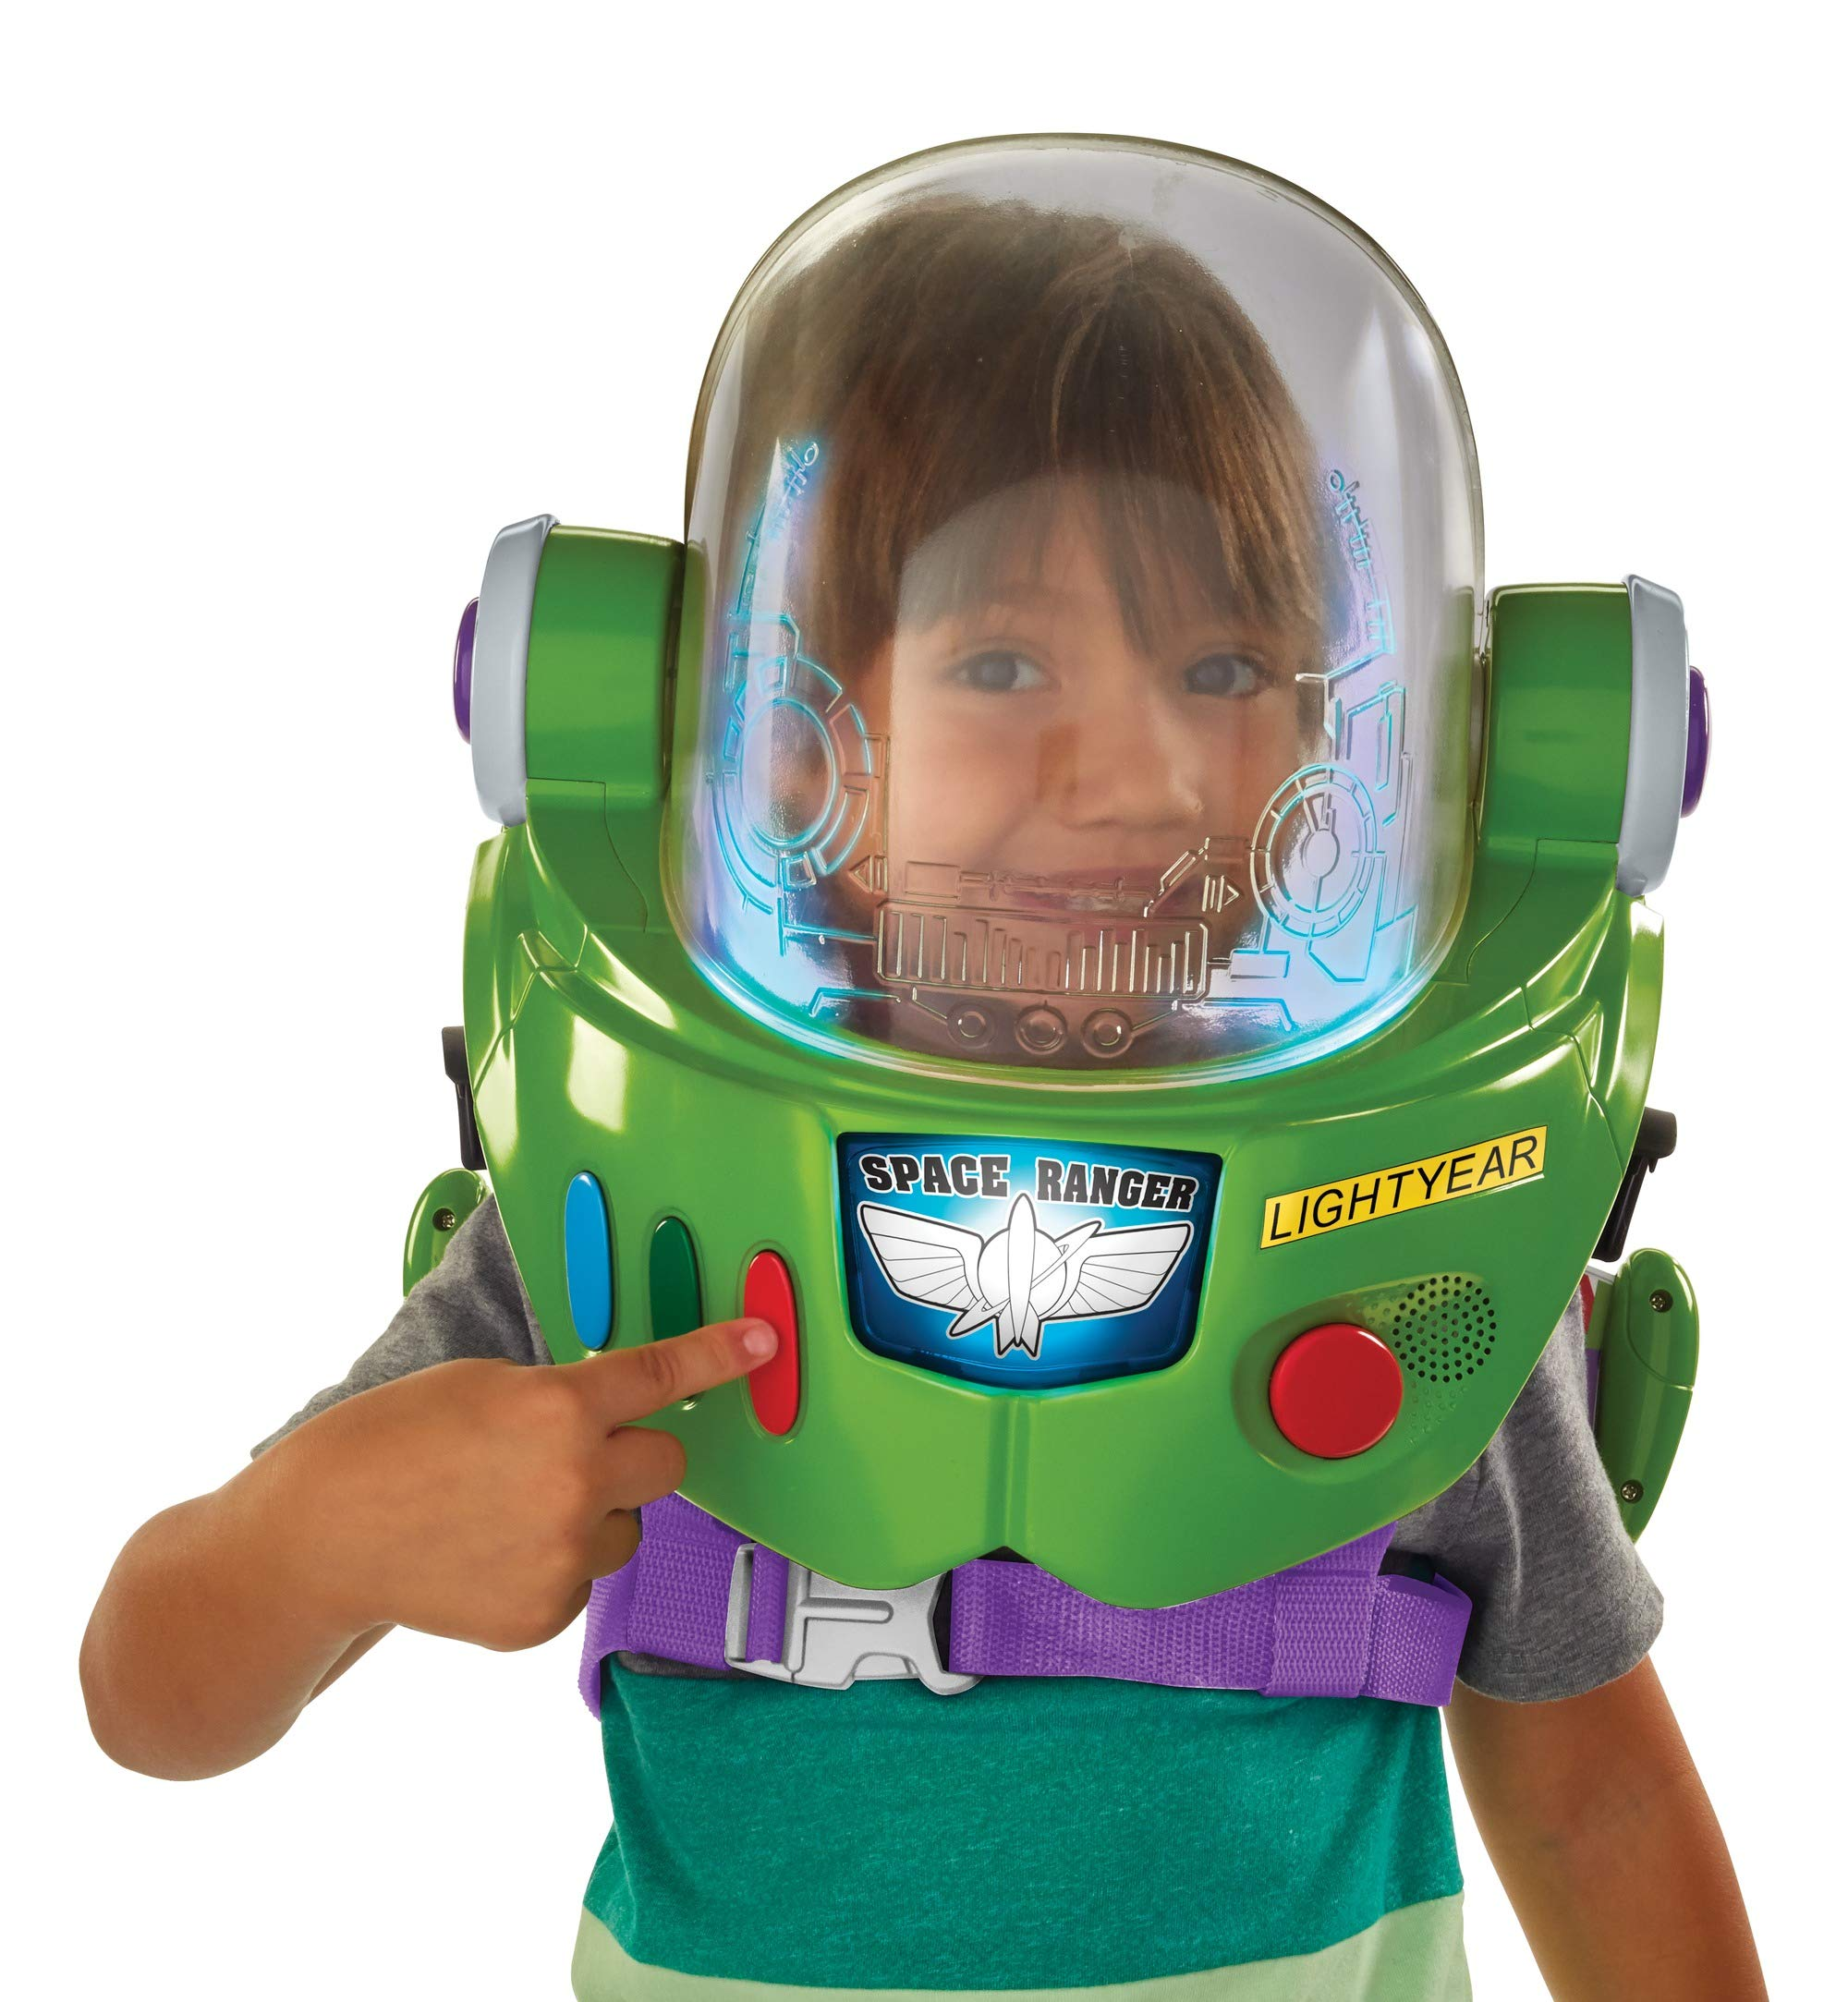 Toy Story Disney Pixar 4 Buzz Lightyear Space Ranger Armor with Jet Pack by Toy Story (Image #13)